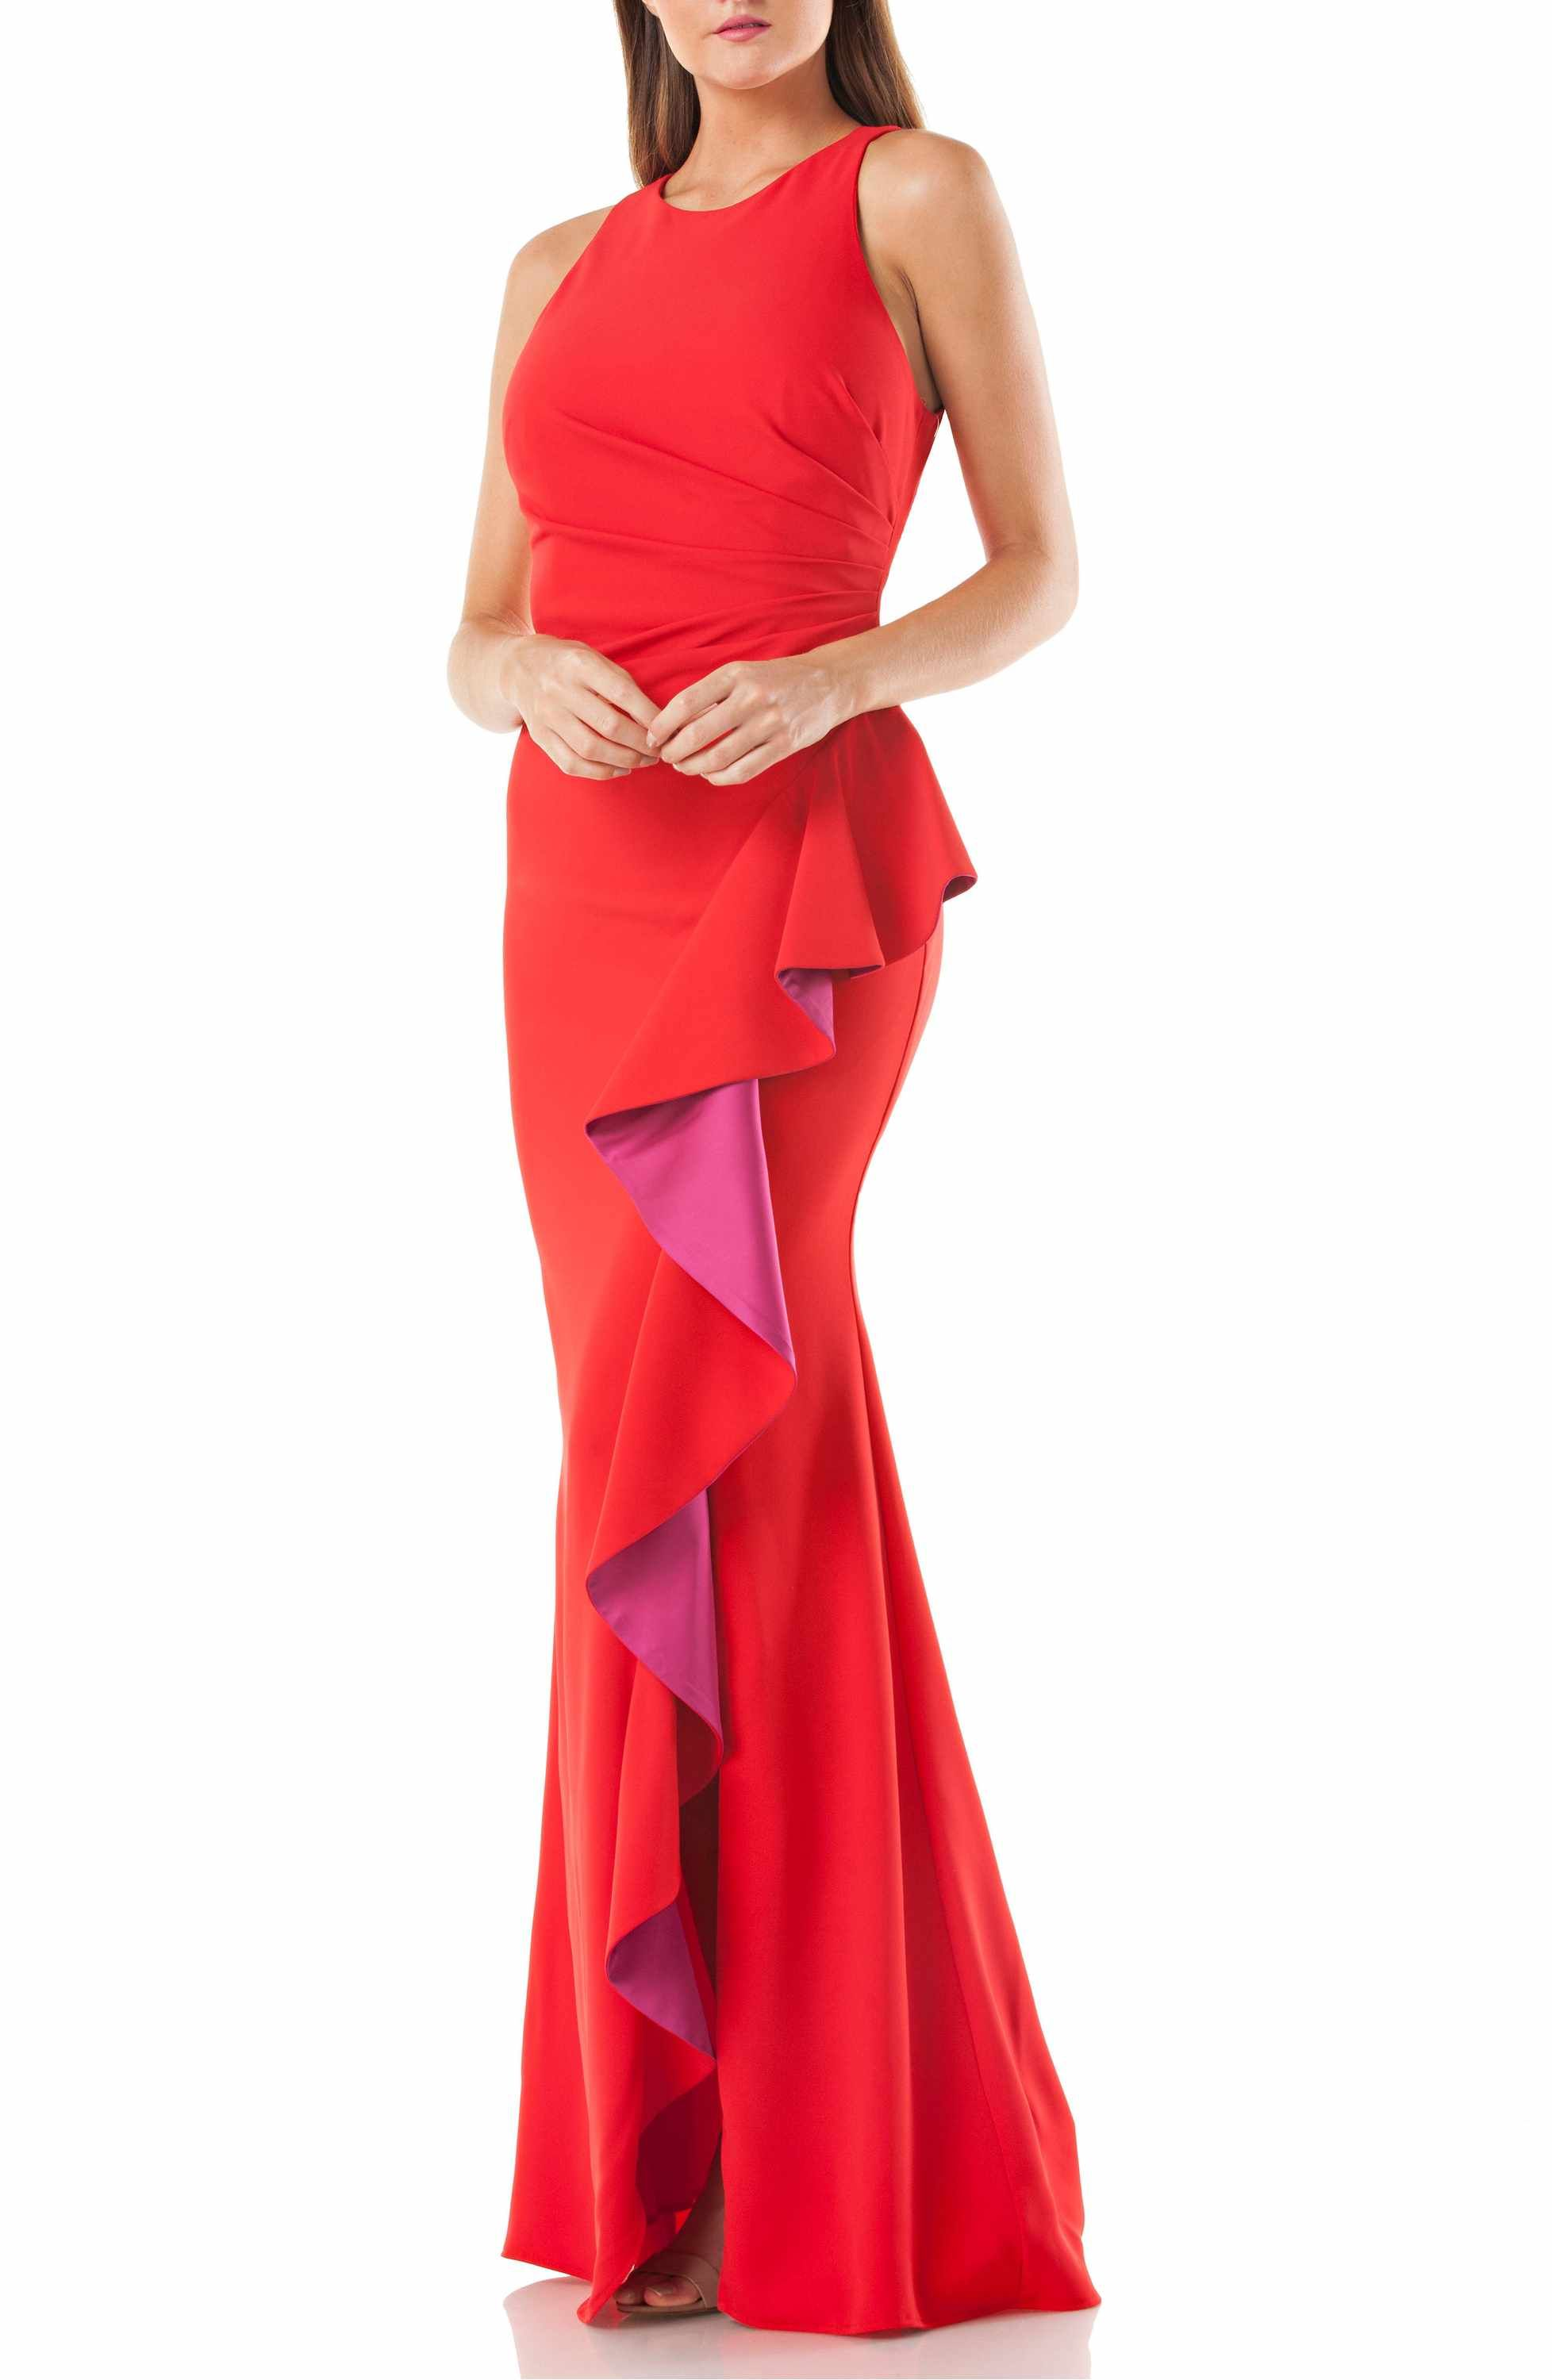 78367cea29947 Main Image - Carmen Marc Valvo Couture Infusion Ruffle Gown ...